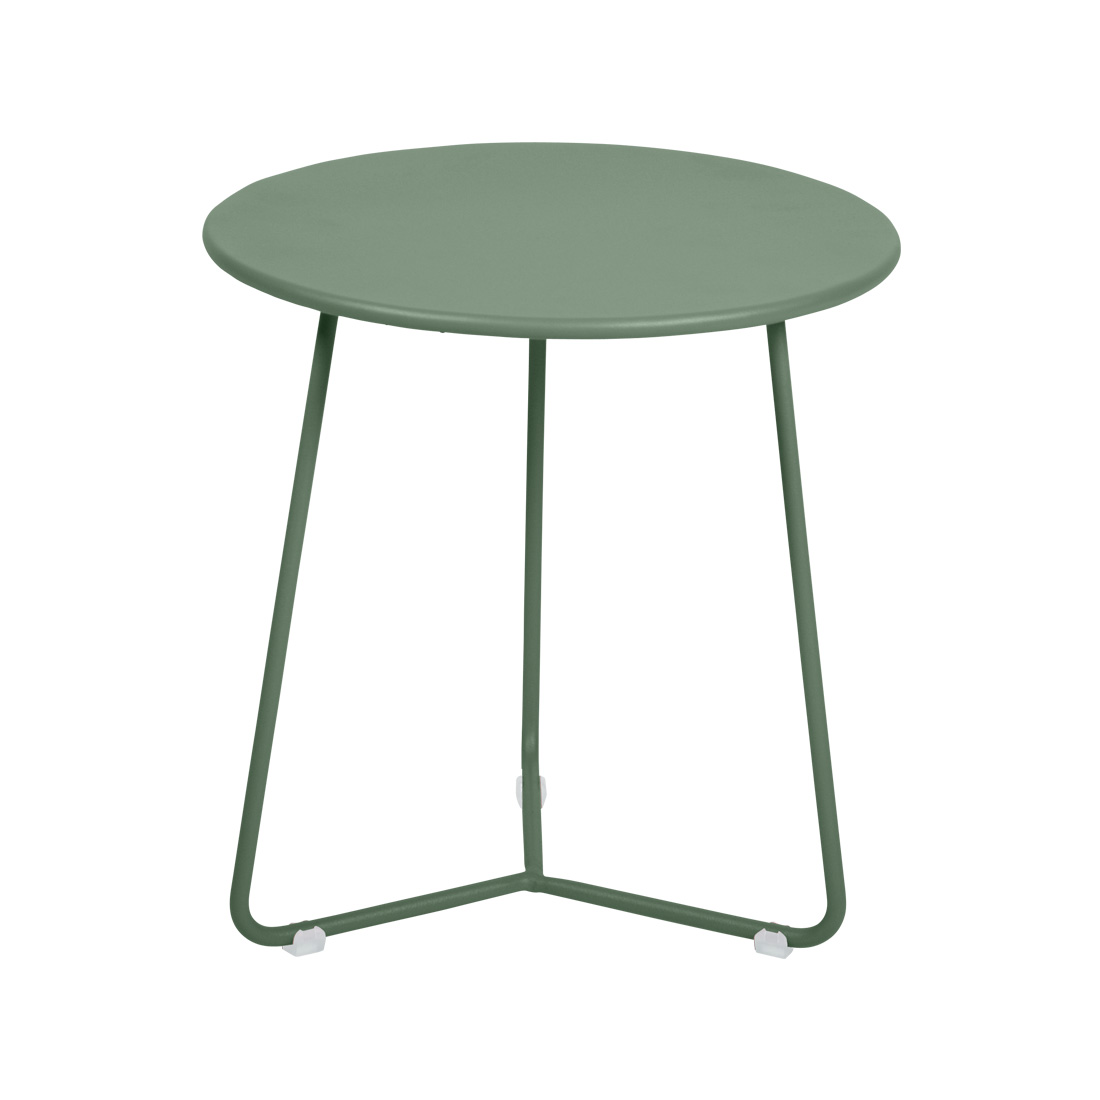 Cocotte table or footstool